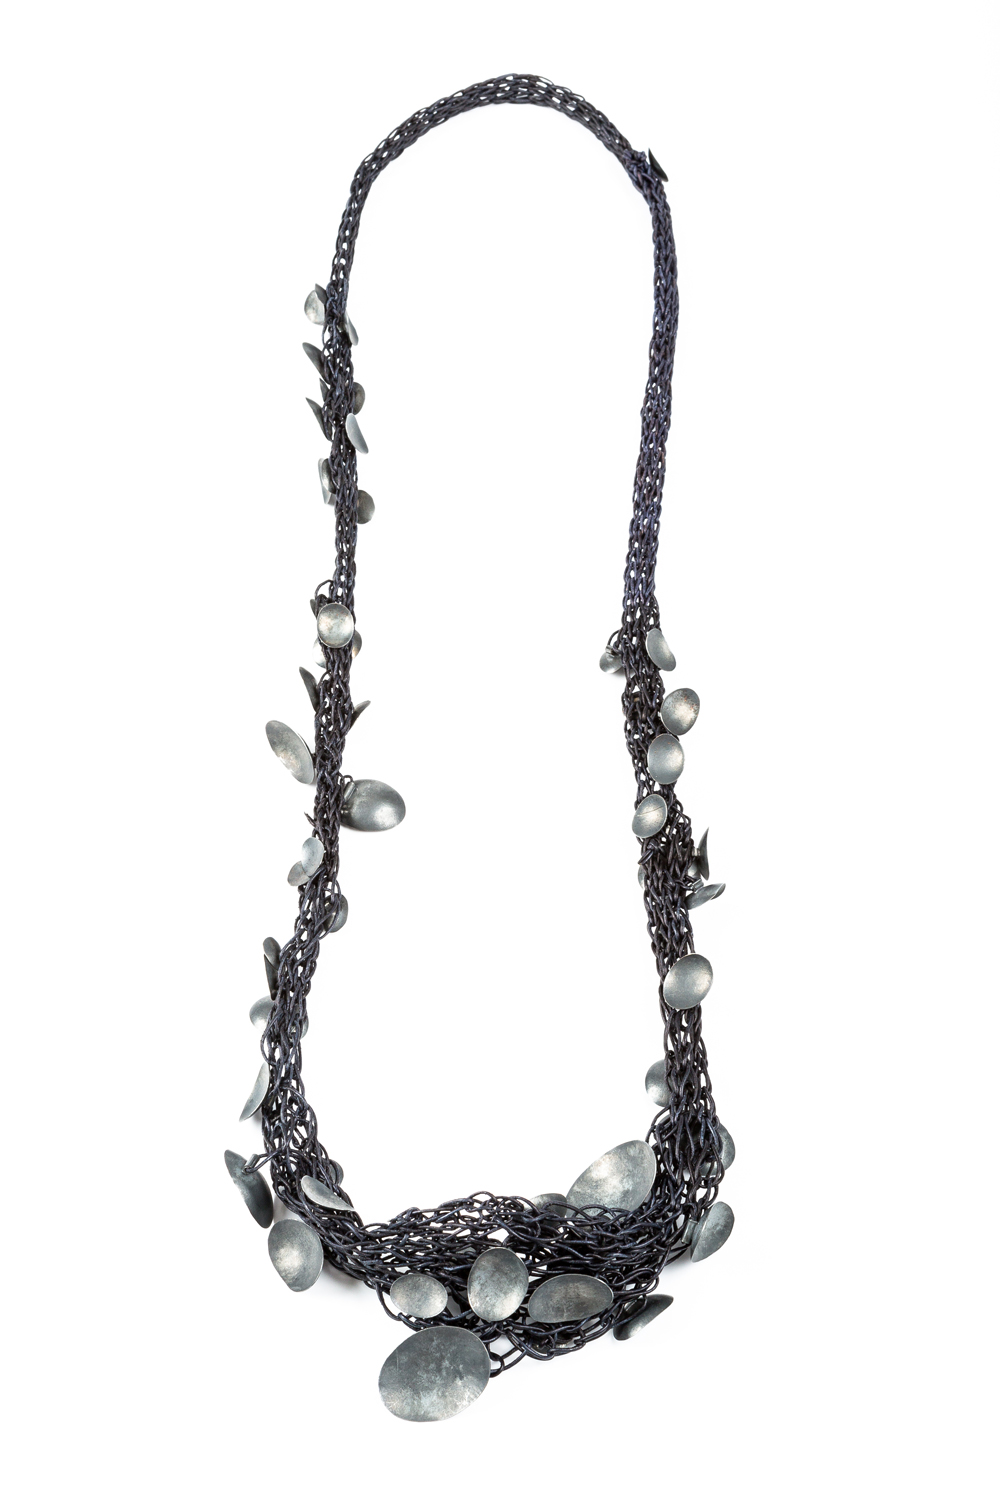 Brooke Marks-Swanson, Basket #9, 2016, Neckpiece, leather, silver, 36""